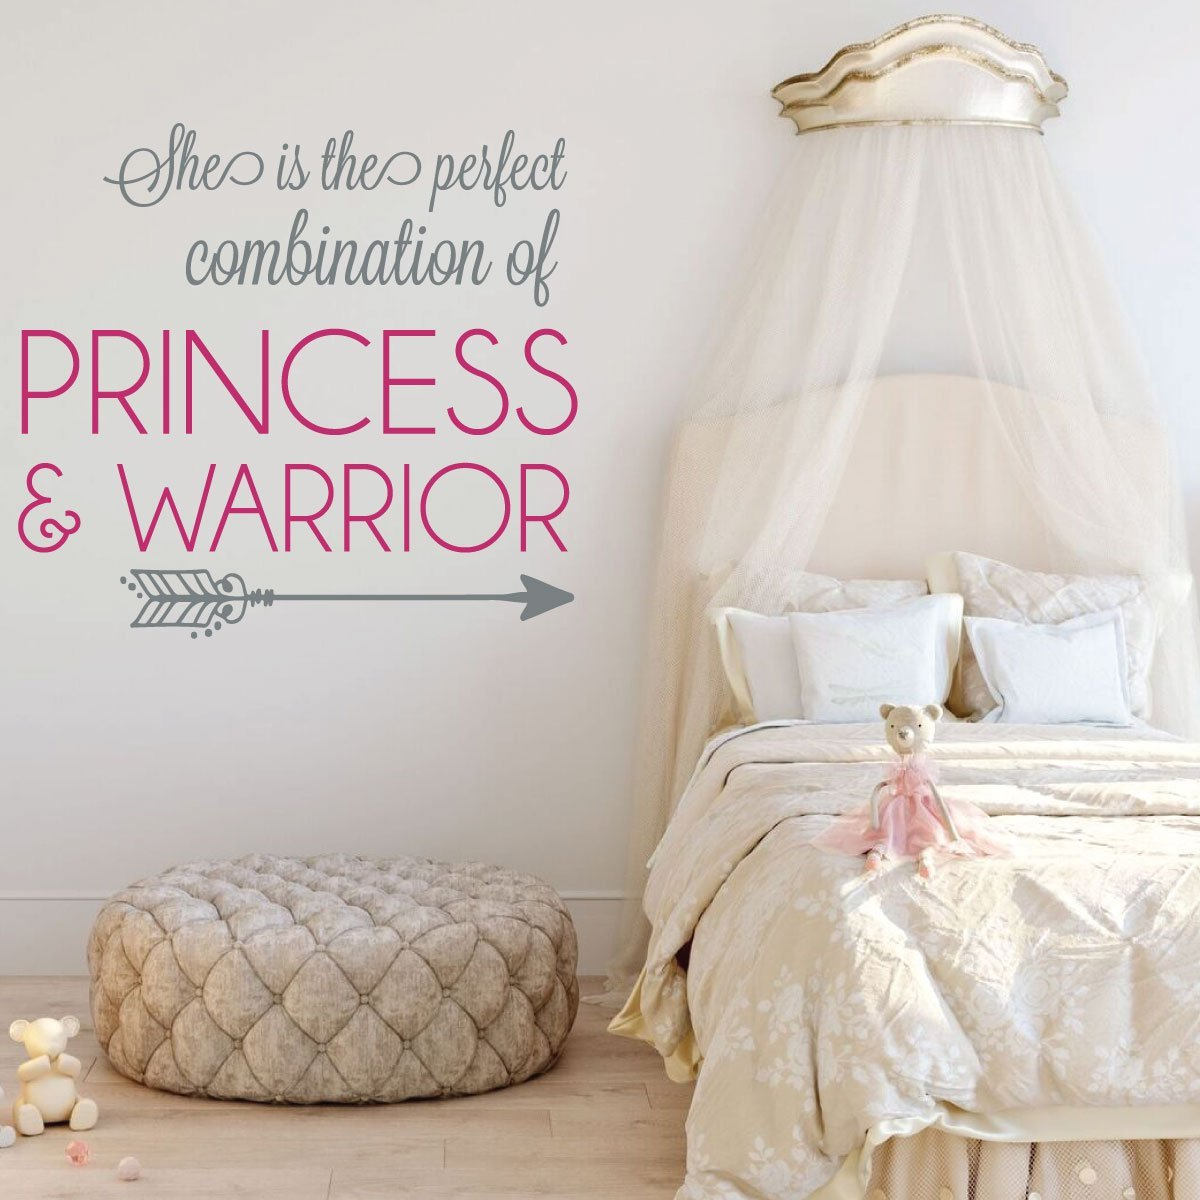 Girls Princess Warrior Bedroom Vinyl Decor Wall Decal